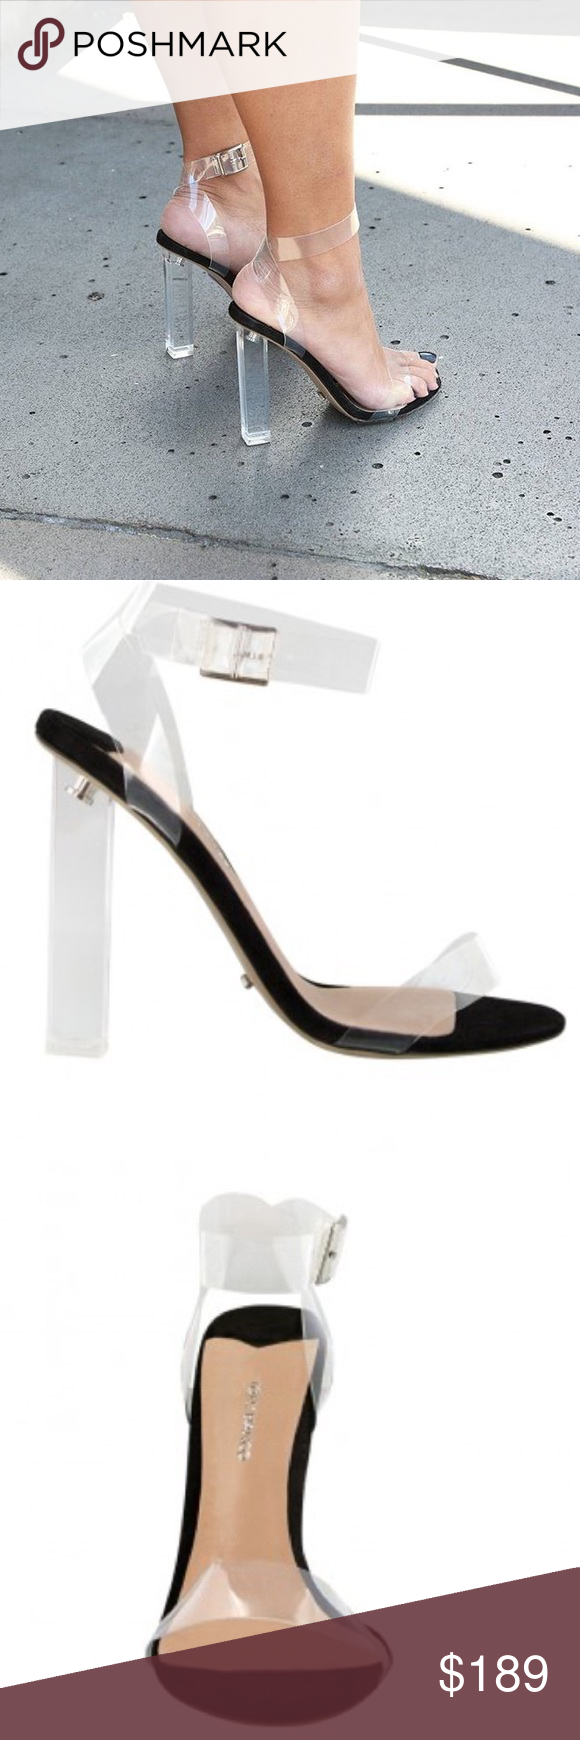 25524417e00 Tony Bianco KiKi sandals with clear heel A black suede and clear ...